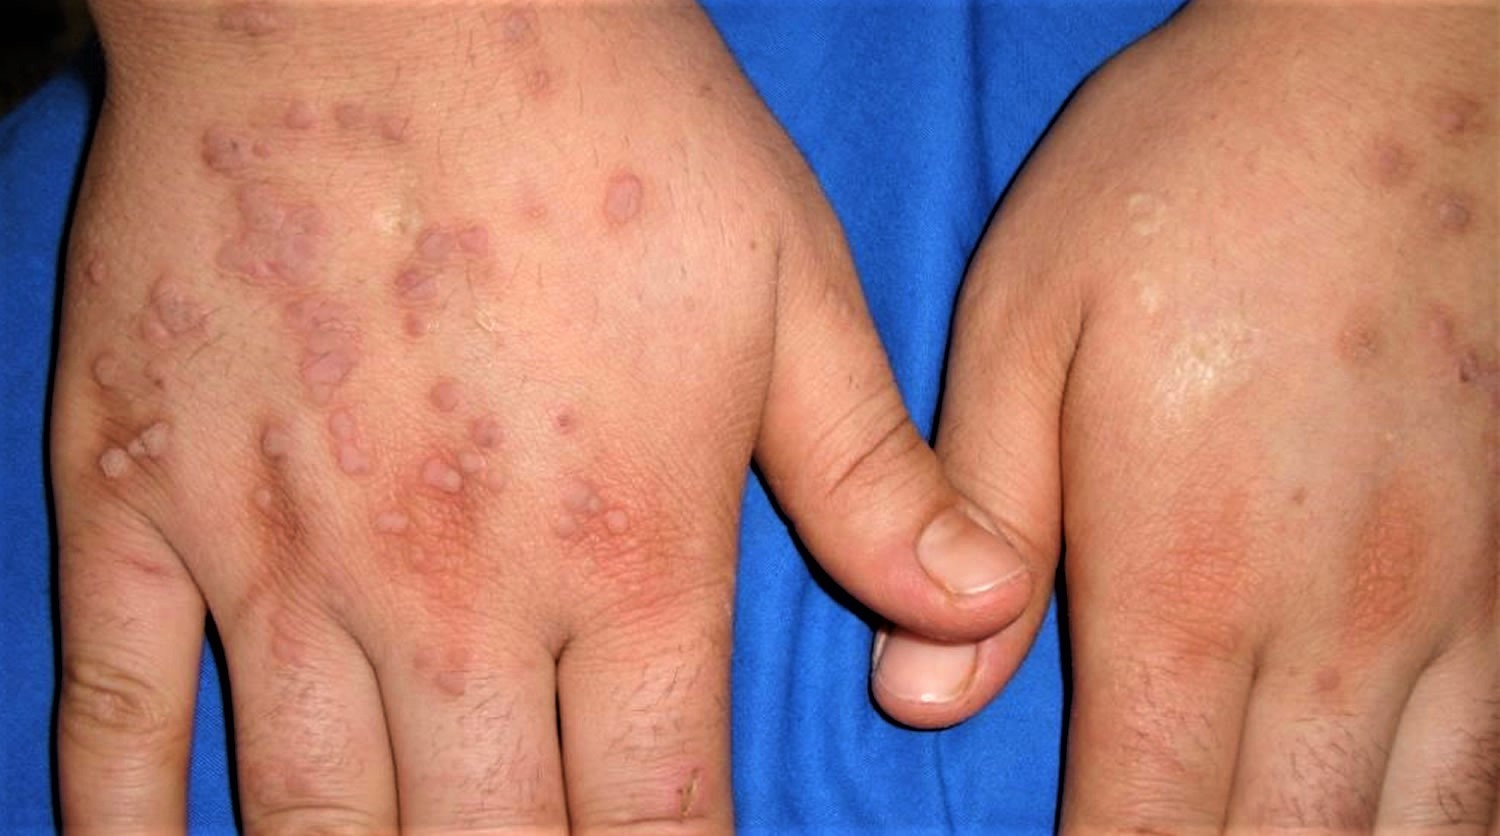 Warts Pictures Photos Images - What Do